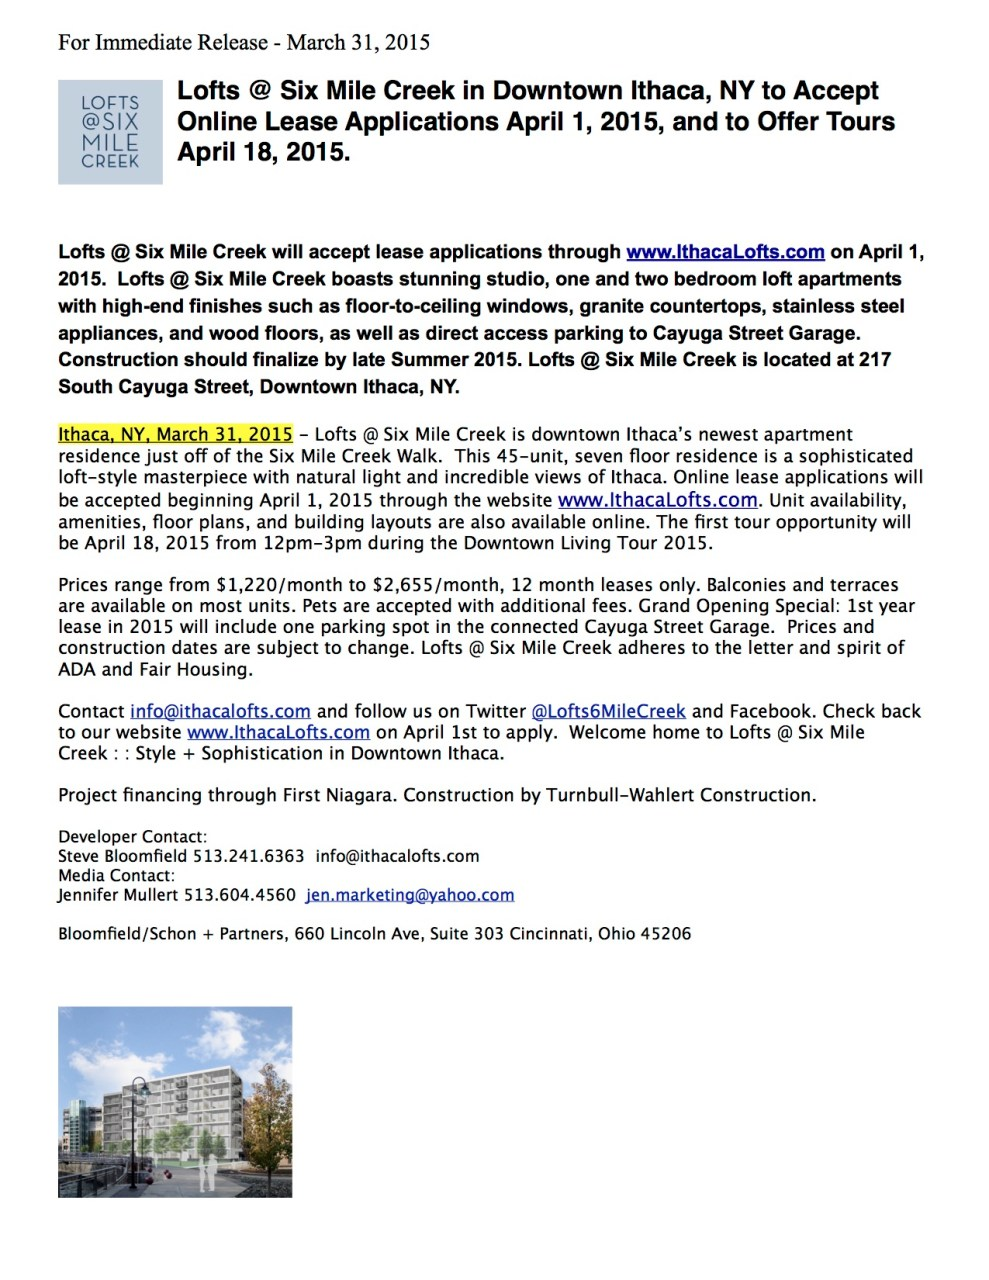 Press Release March 31 2015 Final - Online Leasing